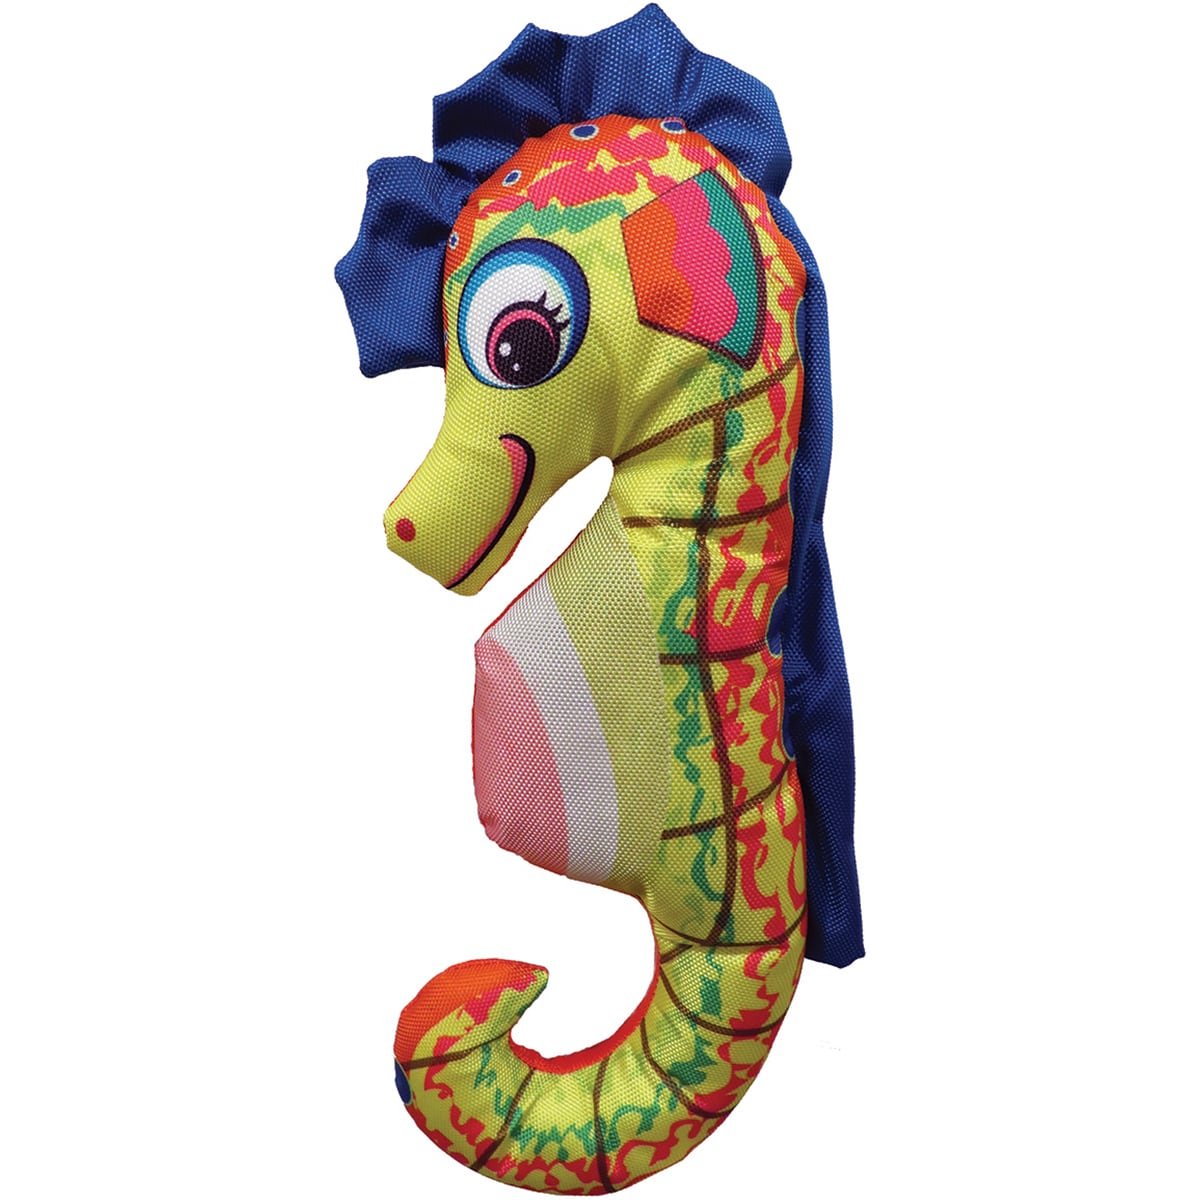 "Plush Suzy Sea Horse Dog Toy 17"" (Dog Toys), Multi"